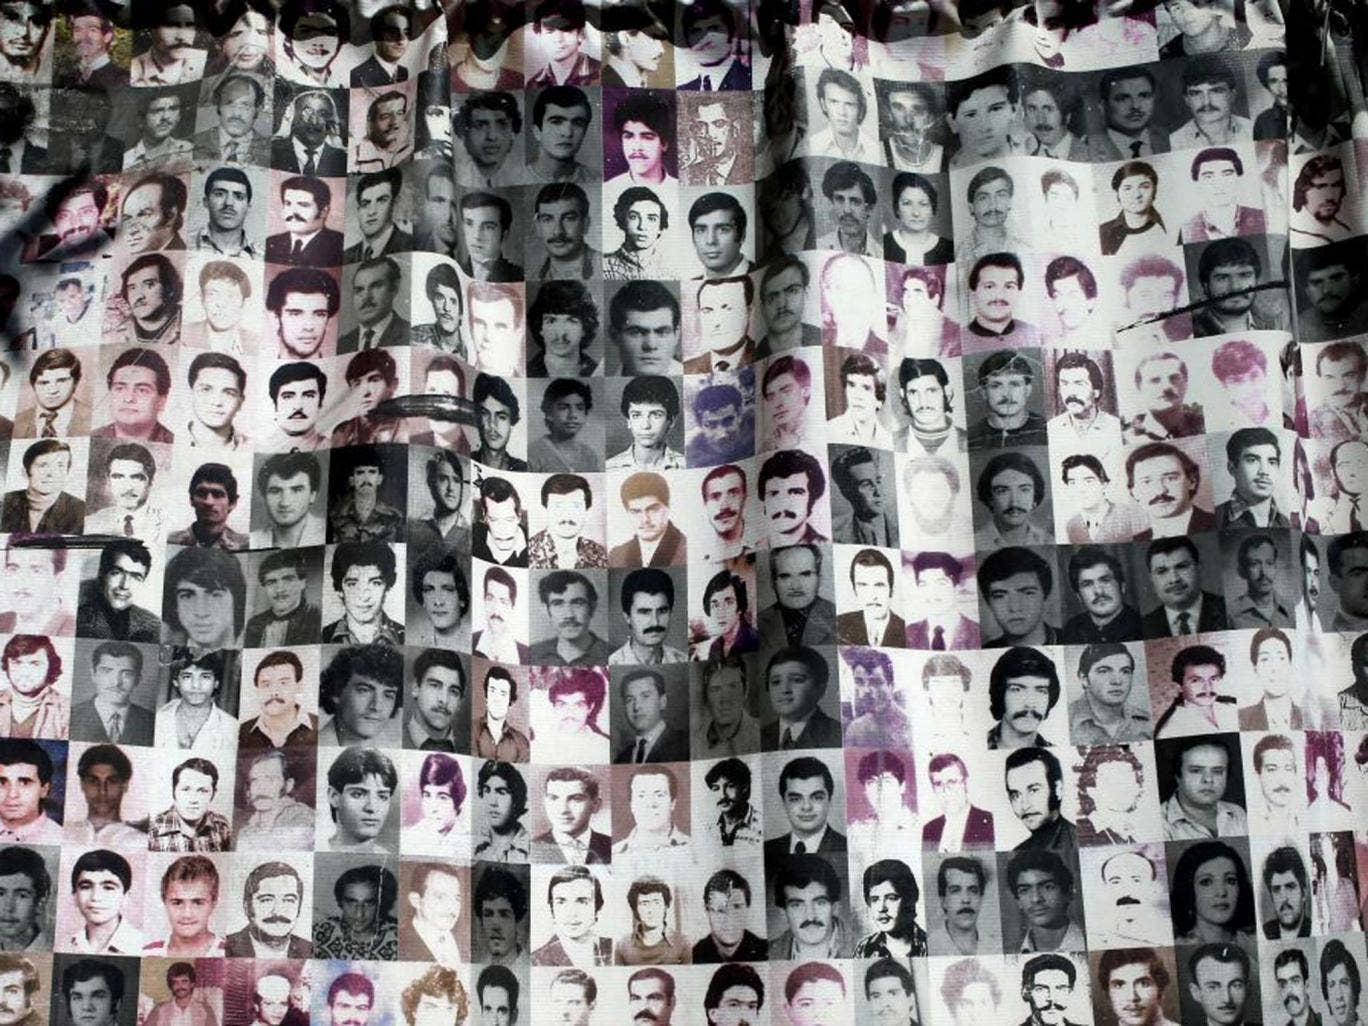 Fading Faces: Portraits of some of the thousands who have gone missing in Lebanon